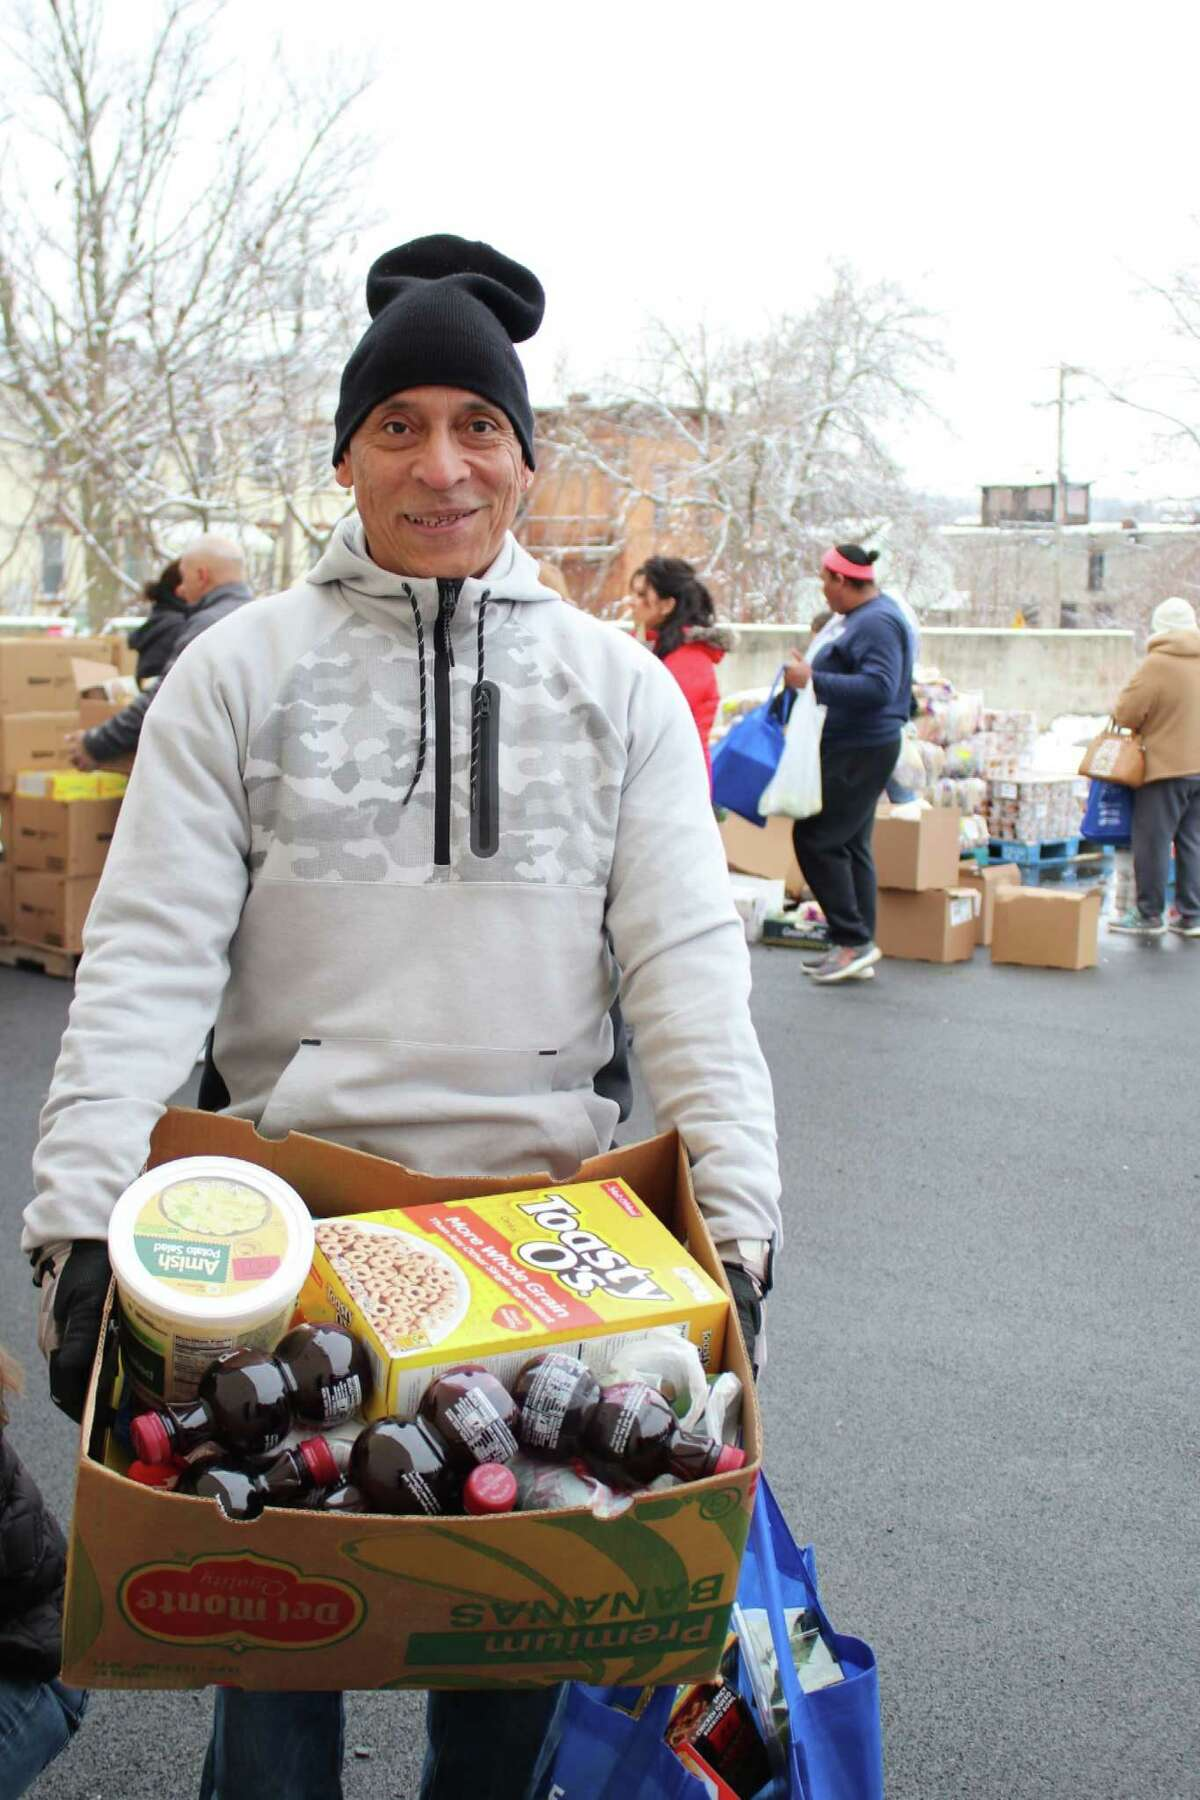 More than 300 people come out for the CC Move food drive at the Centro Civico offices in Amsterdam